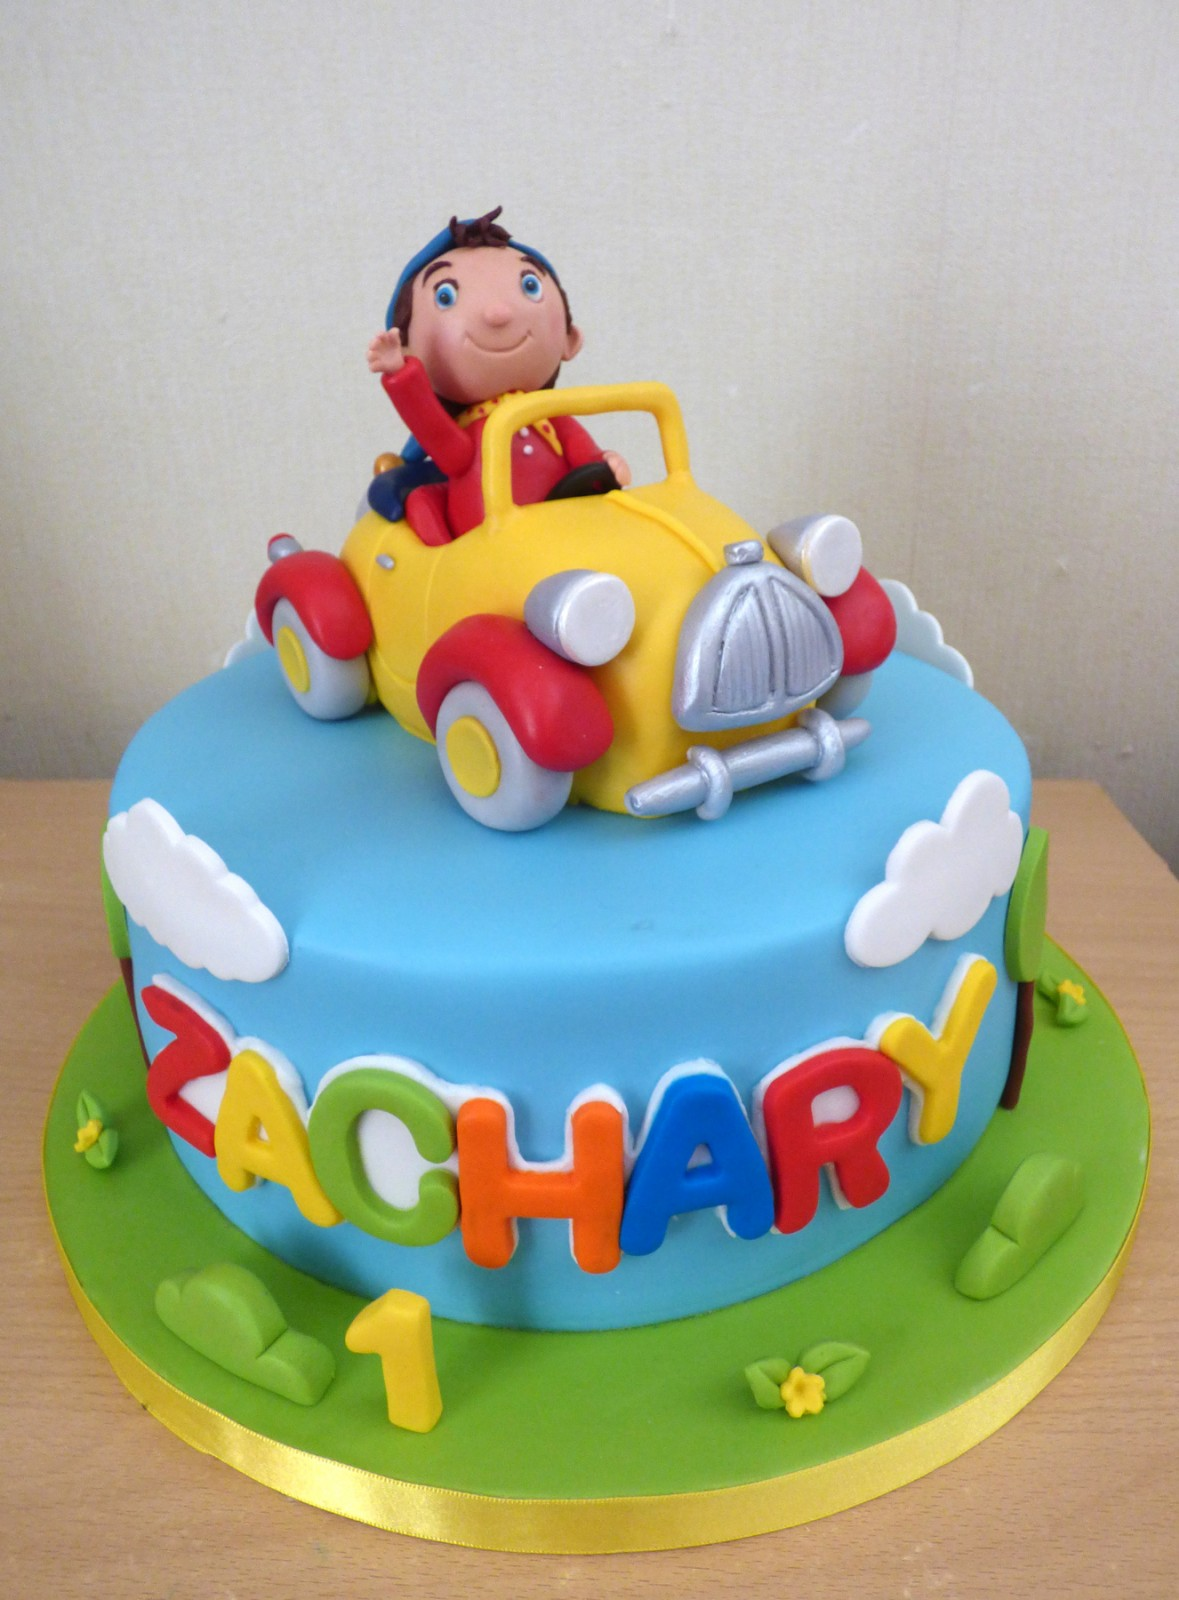 Noddy In His Car Birthday Cake Susie S Cakes